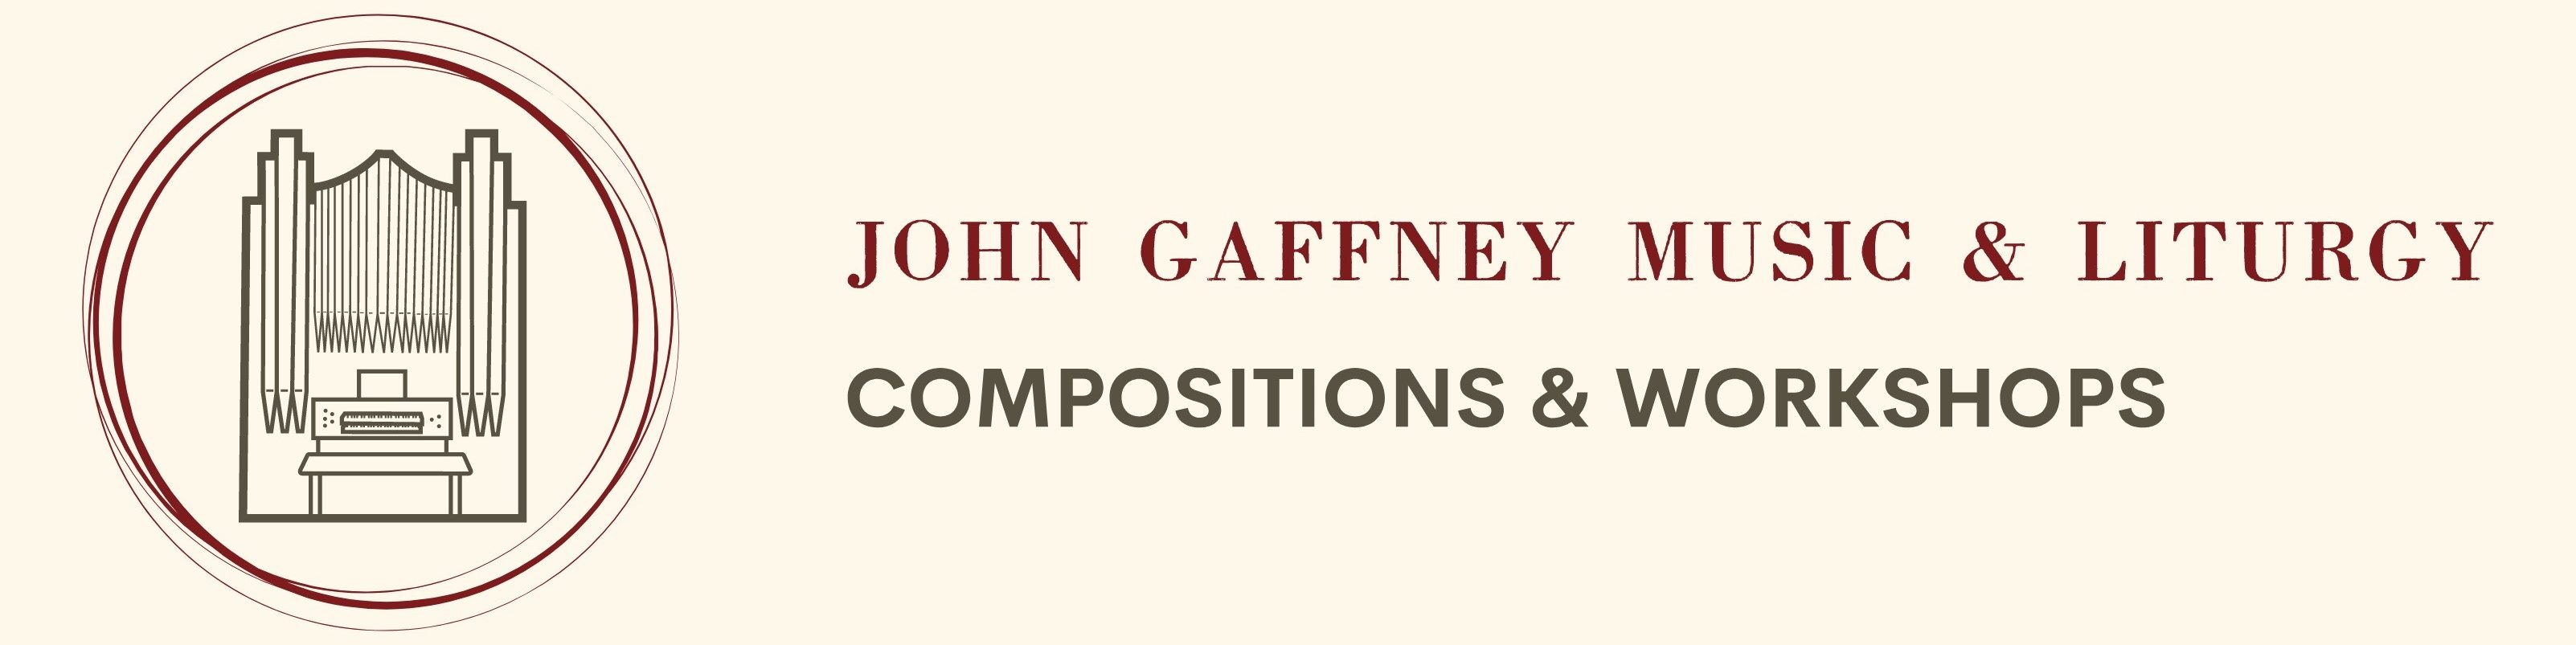 John Gaffney Music & Liturgy